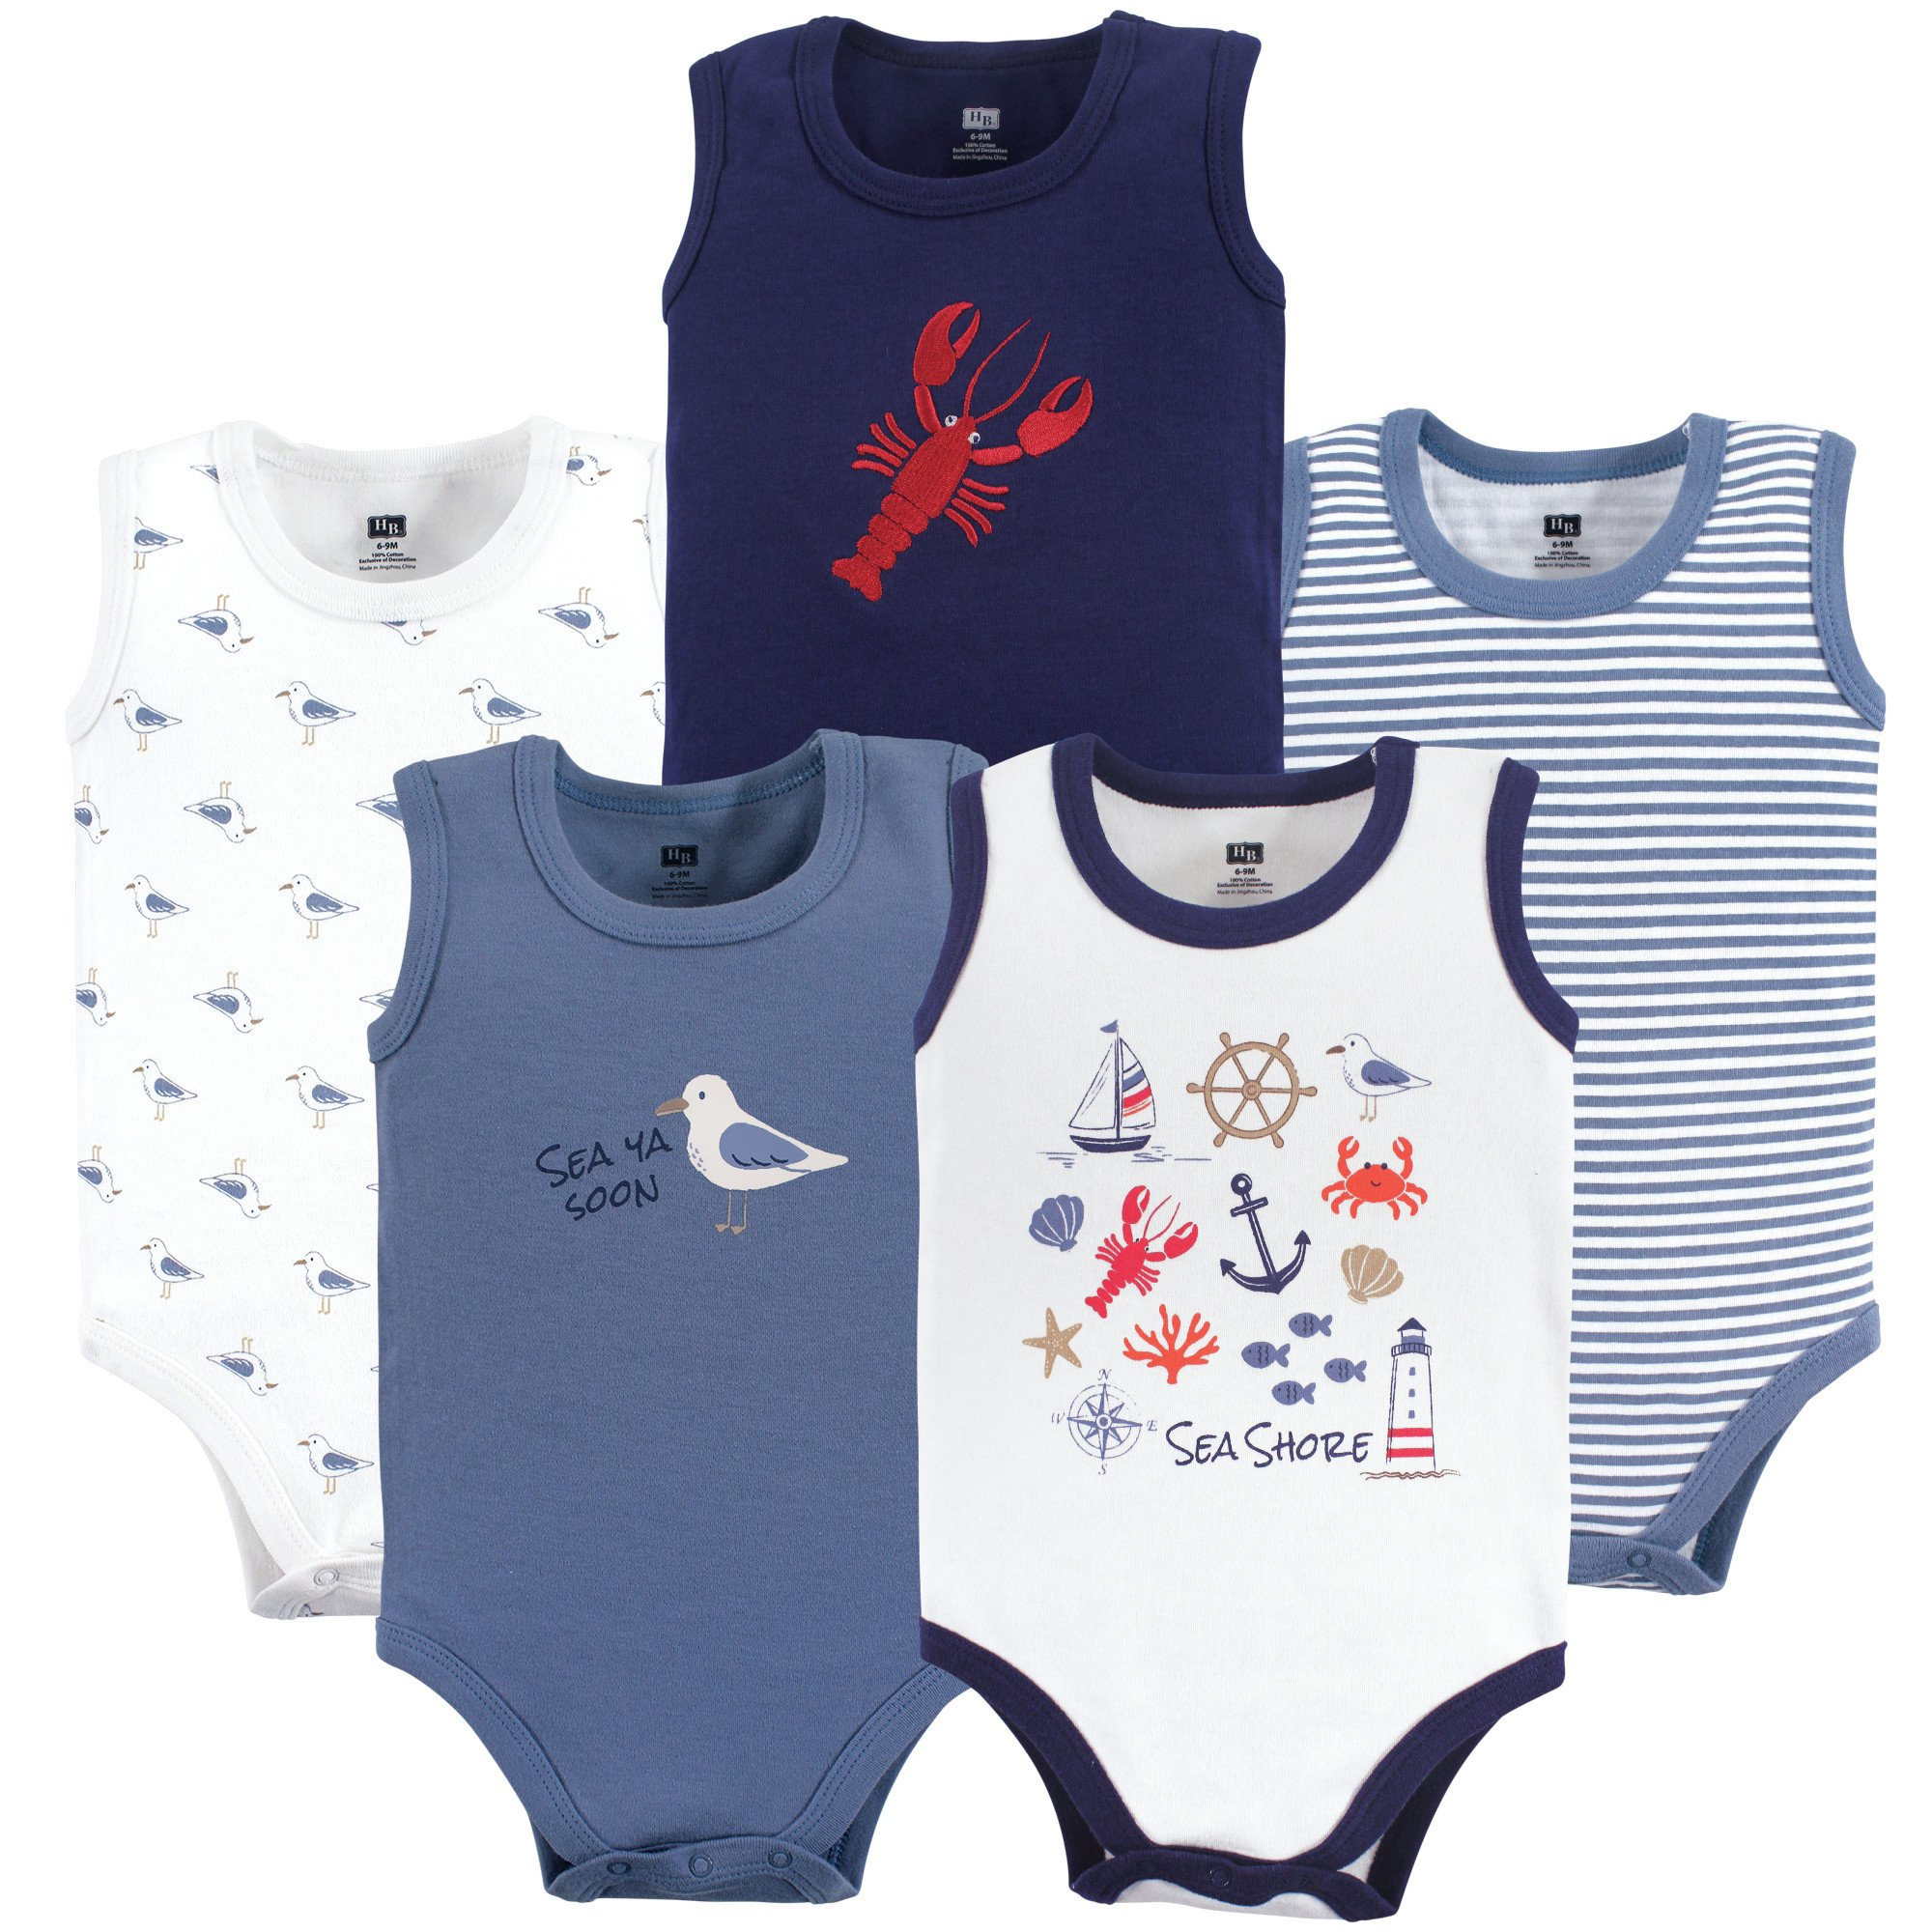 Hudson Baby Baby 5 Pack Sleeveless Cotton Bodysuits, Sea Shore, 12-18 Months